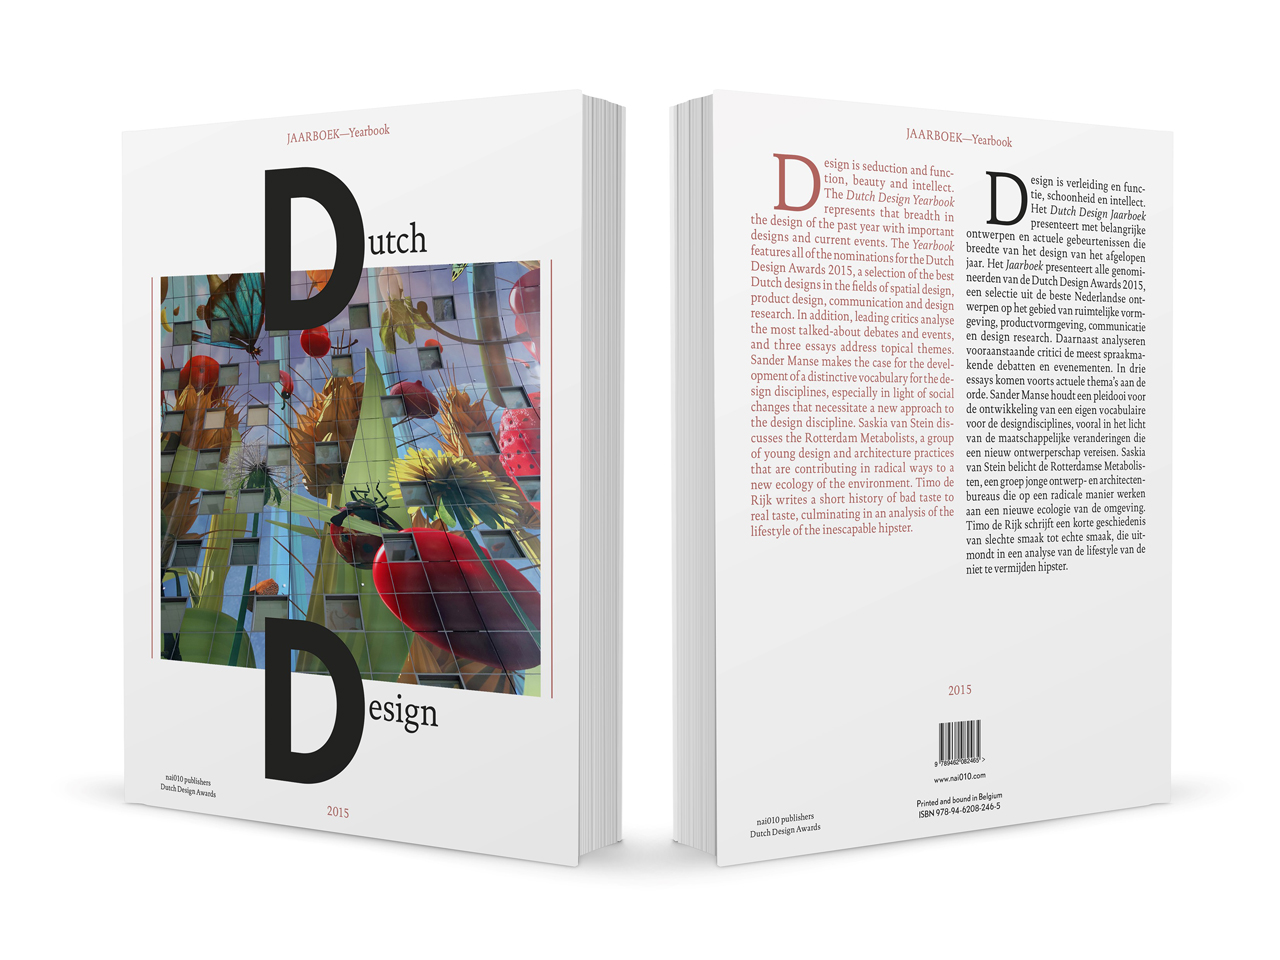 Markthal Artwork by Arno Coenen & Iris Roskam nominated for Dutch Design Award